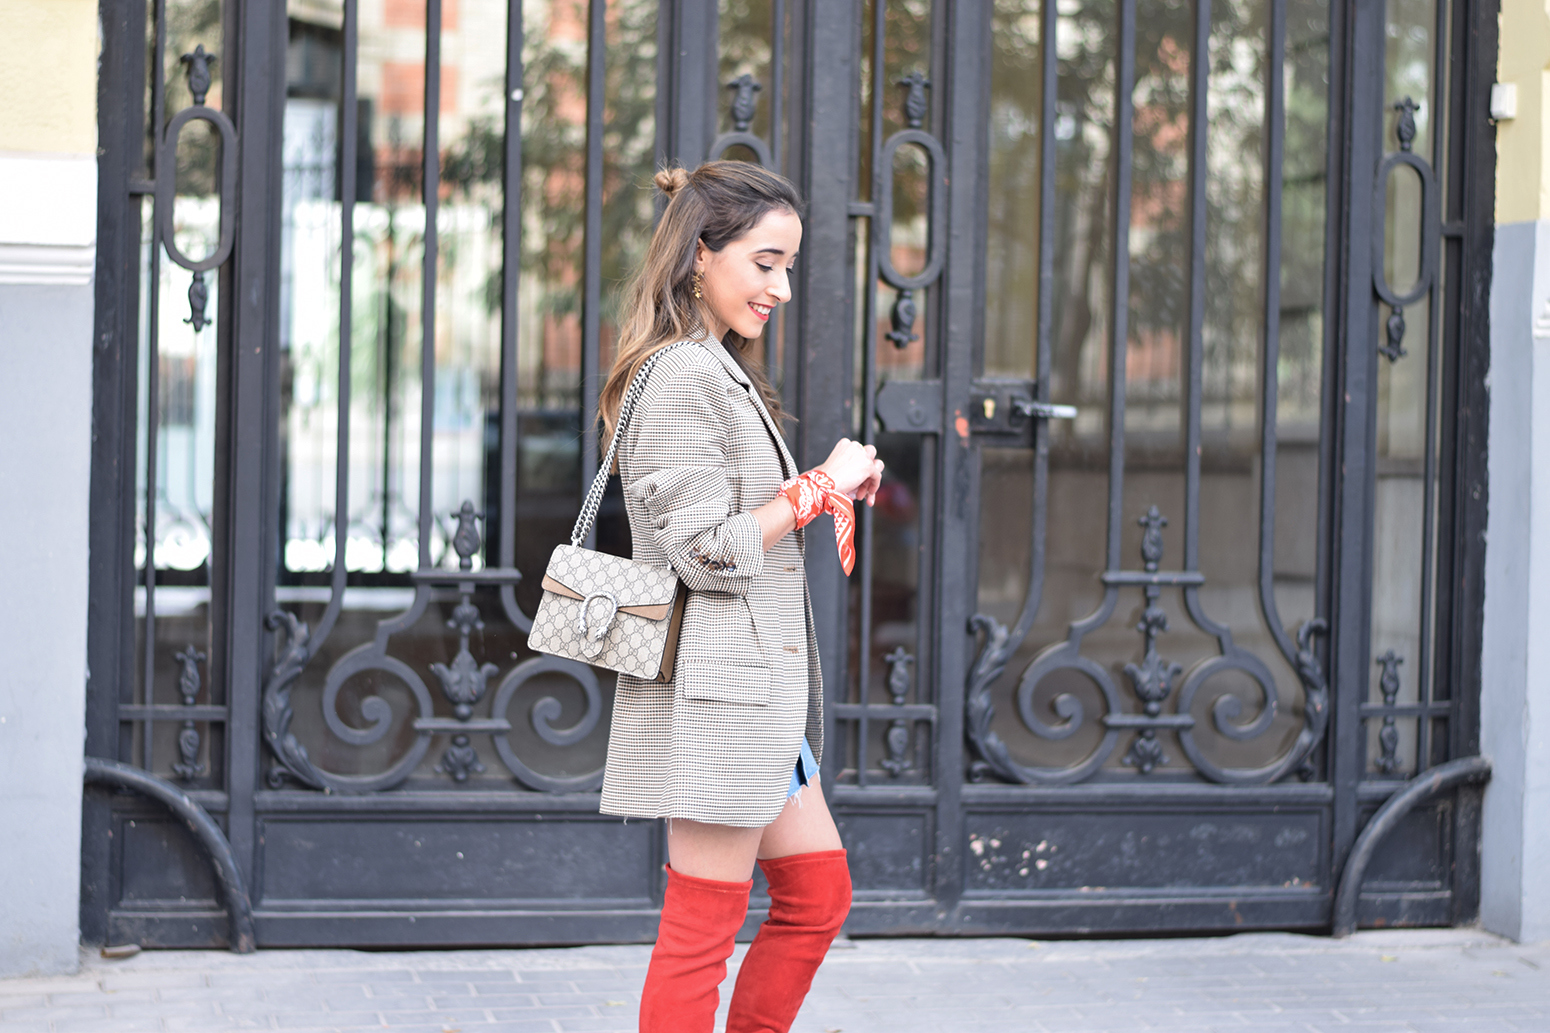 Houndstooth blazer denim skirt gucci bag red over the knee boots autumn outfit style fashion16